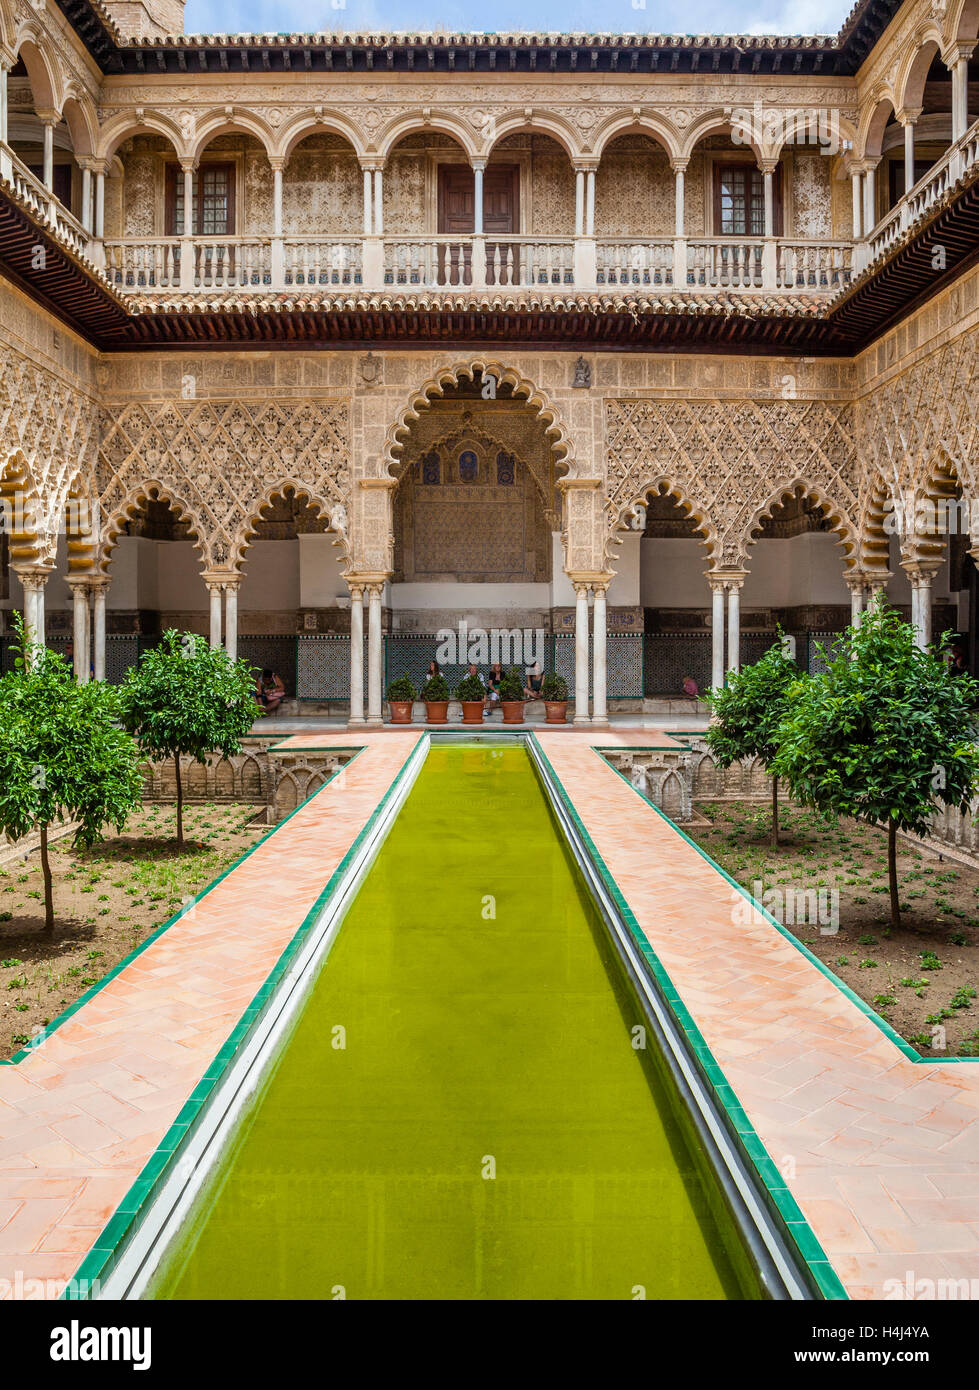 Spain, Andalusia, Province of Seville, Seville, Alcazar, Patio de las Doncellas, Courtyard of the Maidens - Stock Image